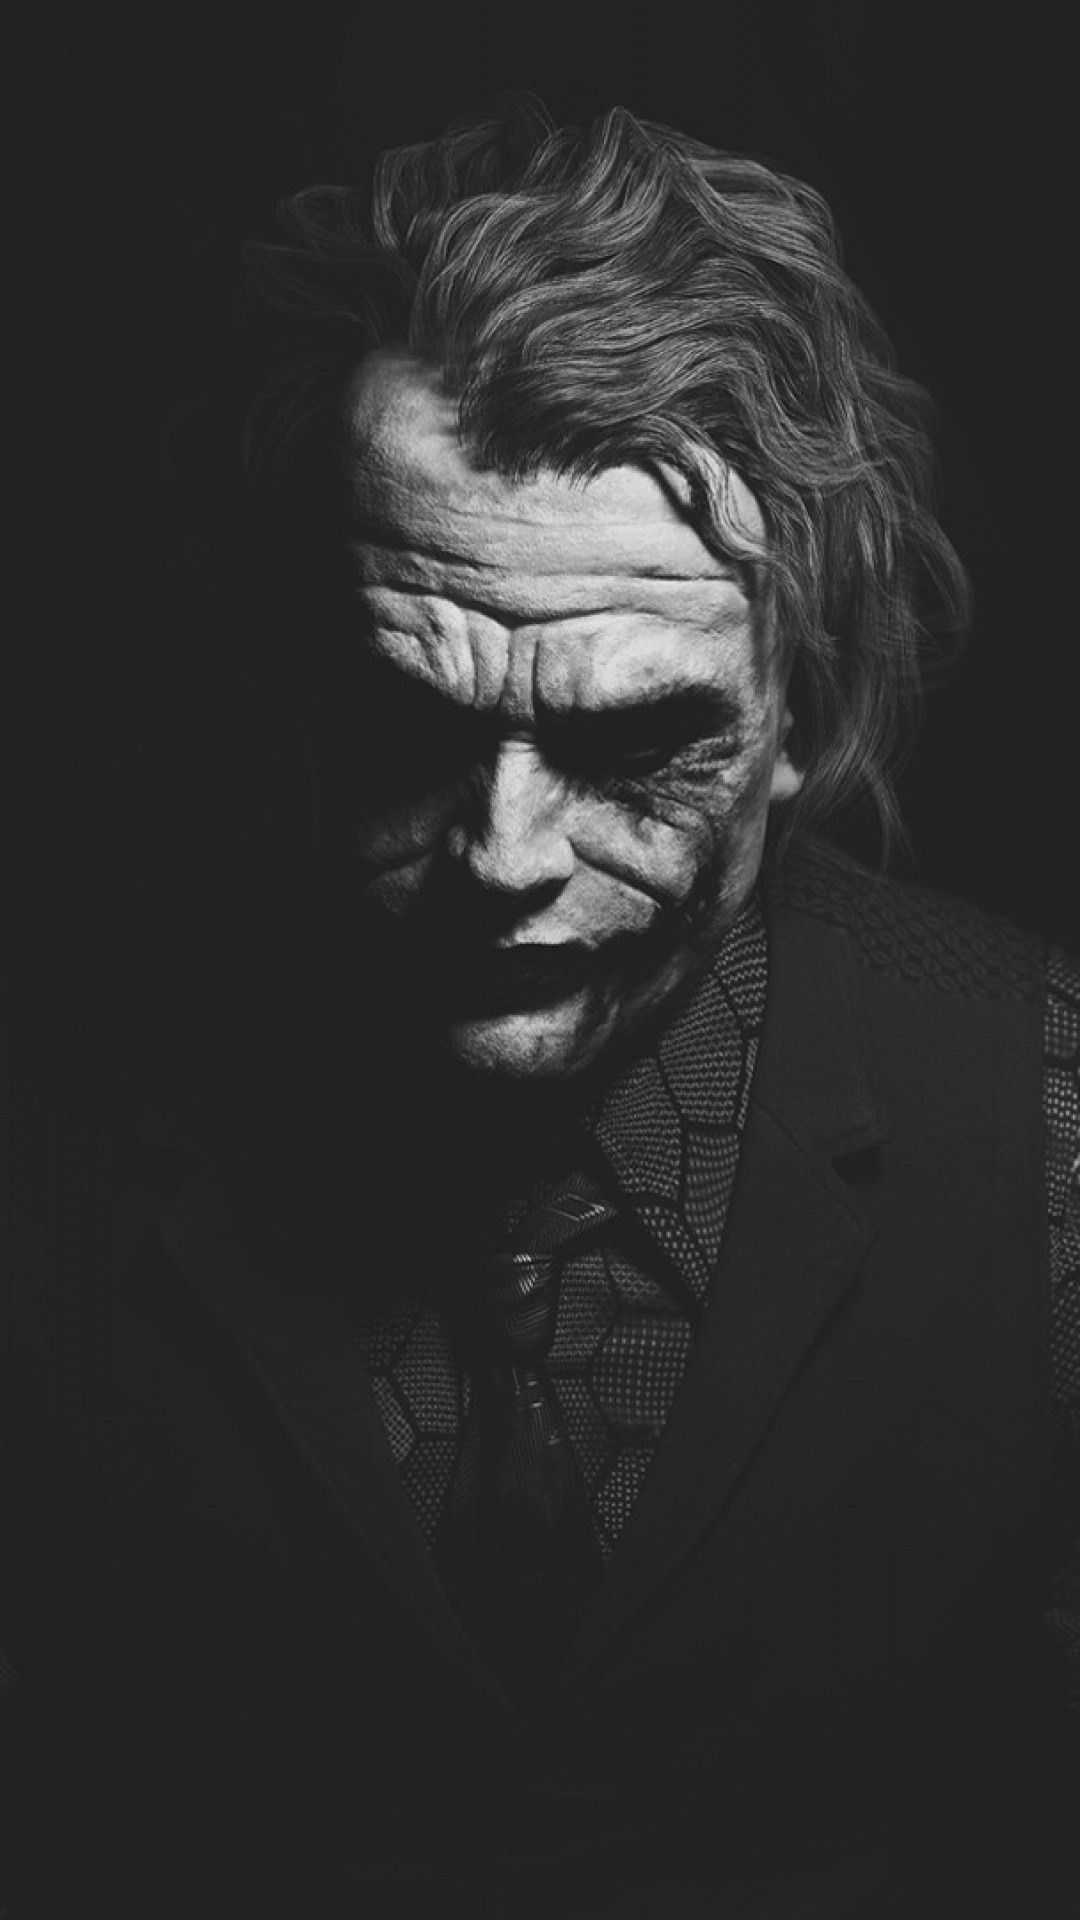 1080x1920 Heath Ledger Joker Monochrome Batman Hd Wallpapers For Iphone